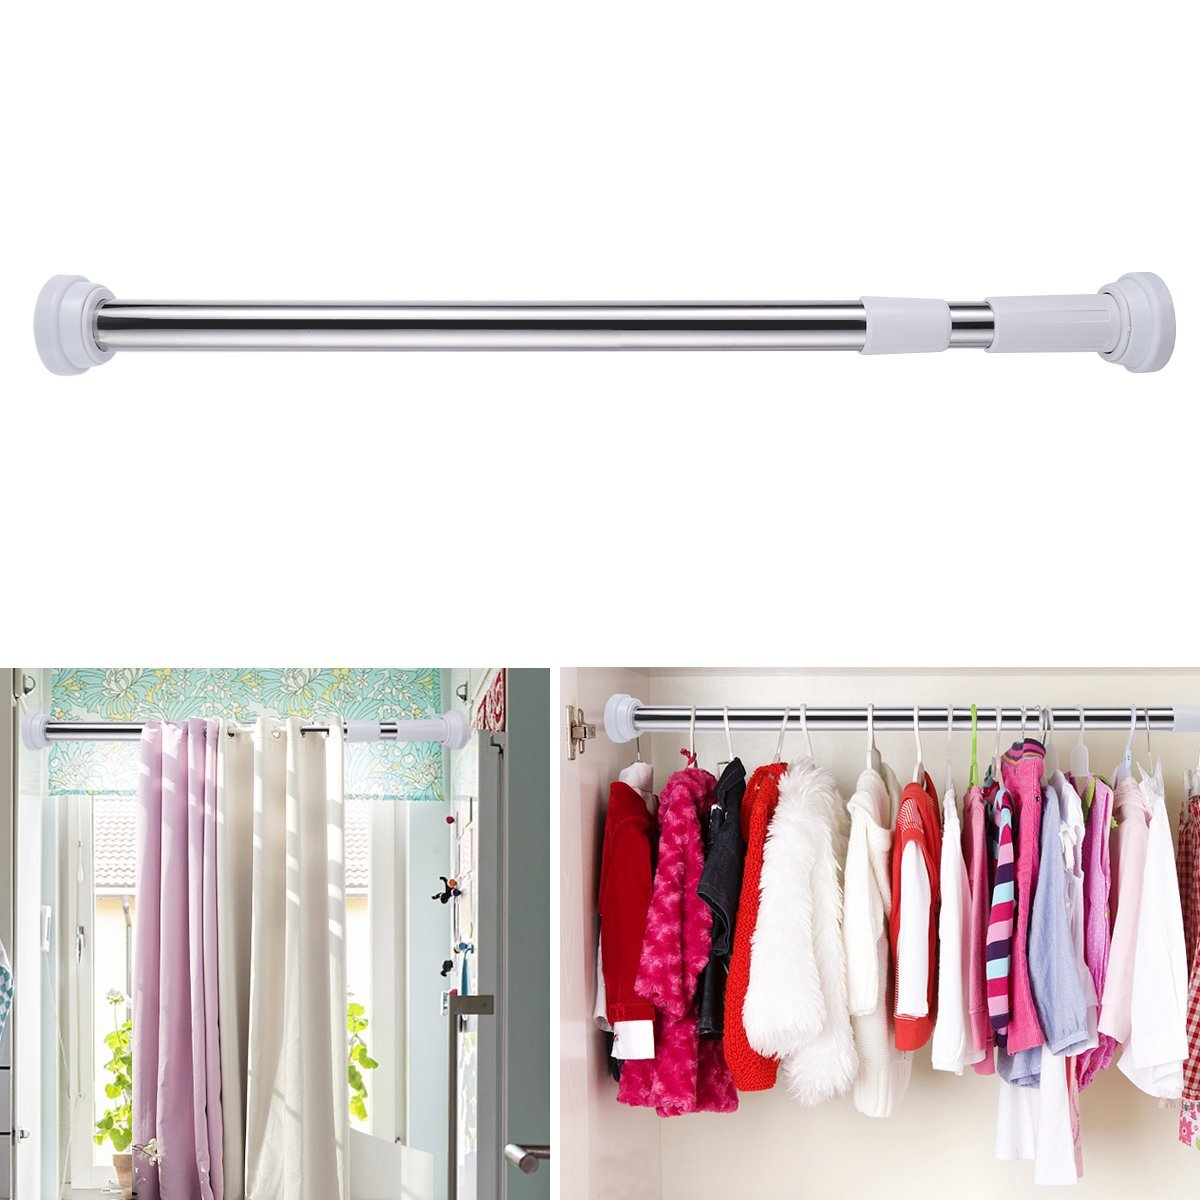 Cheap Tension Arc Shower Curtain Rod Find Tension Arc